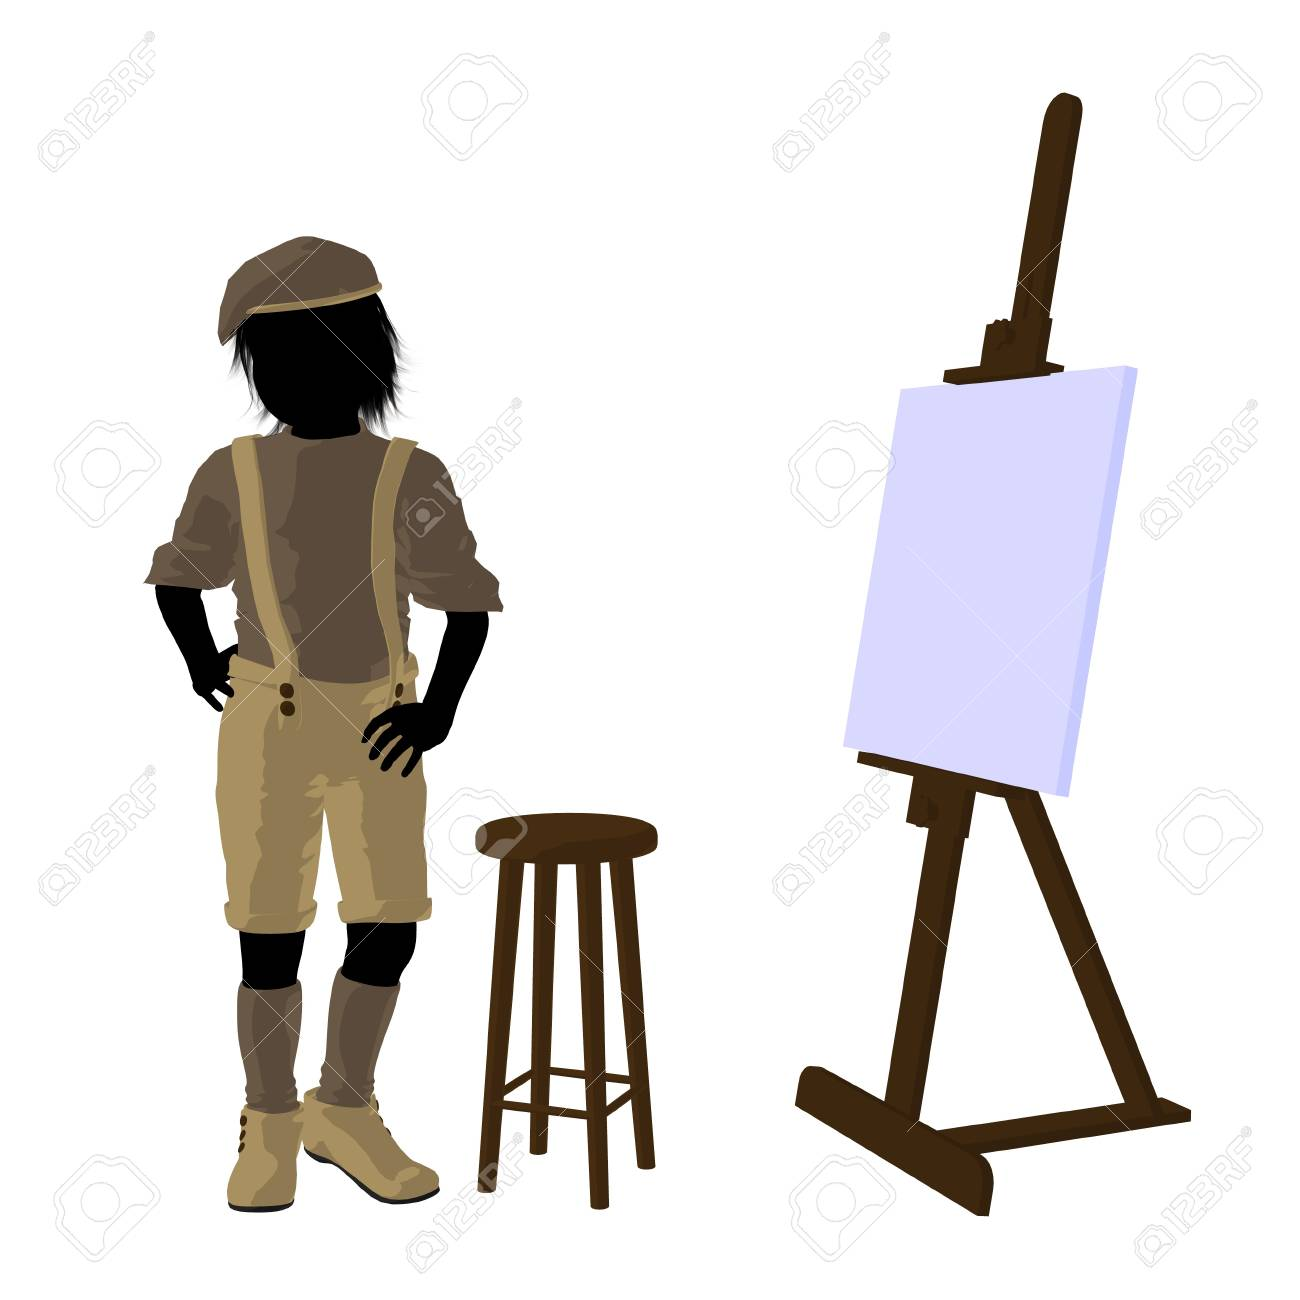 male tween artist with an easel and stool on a white background